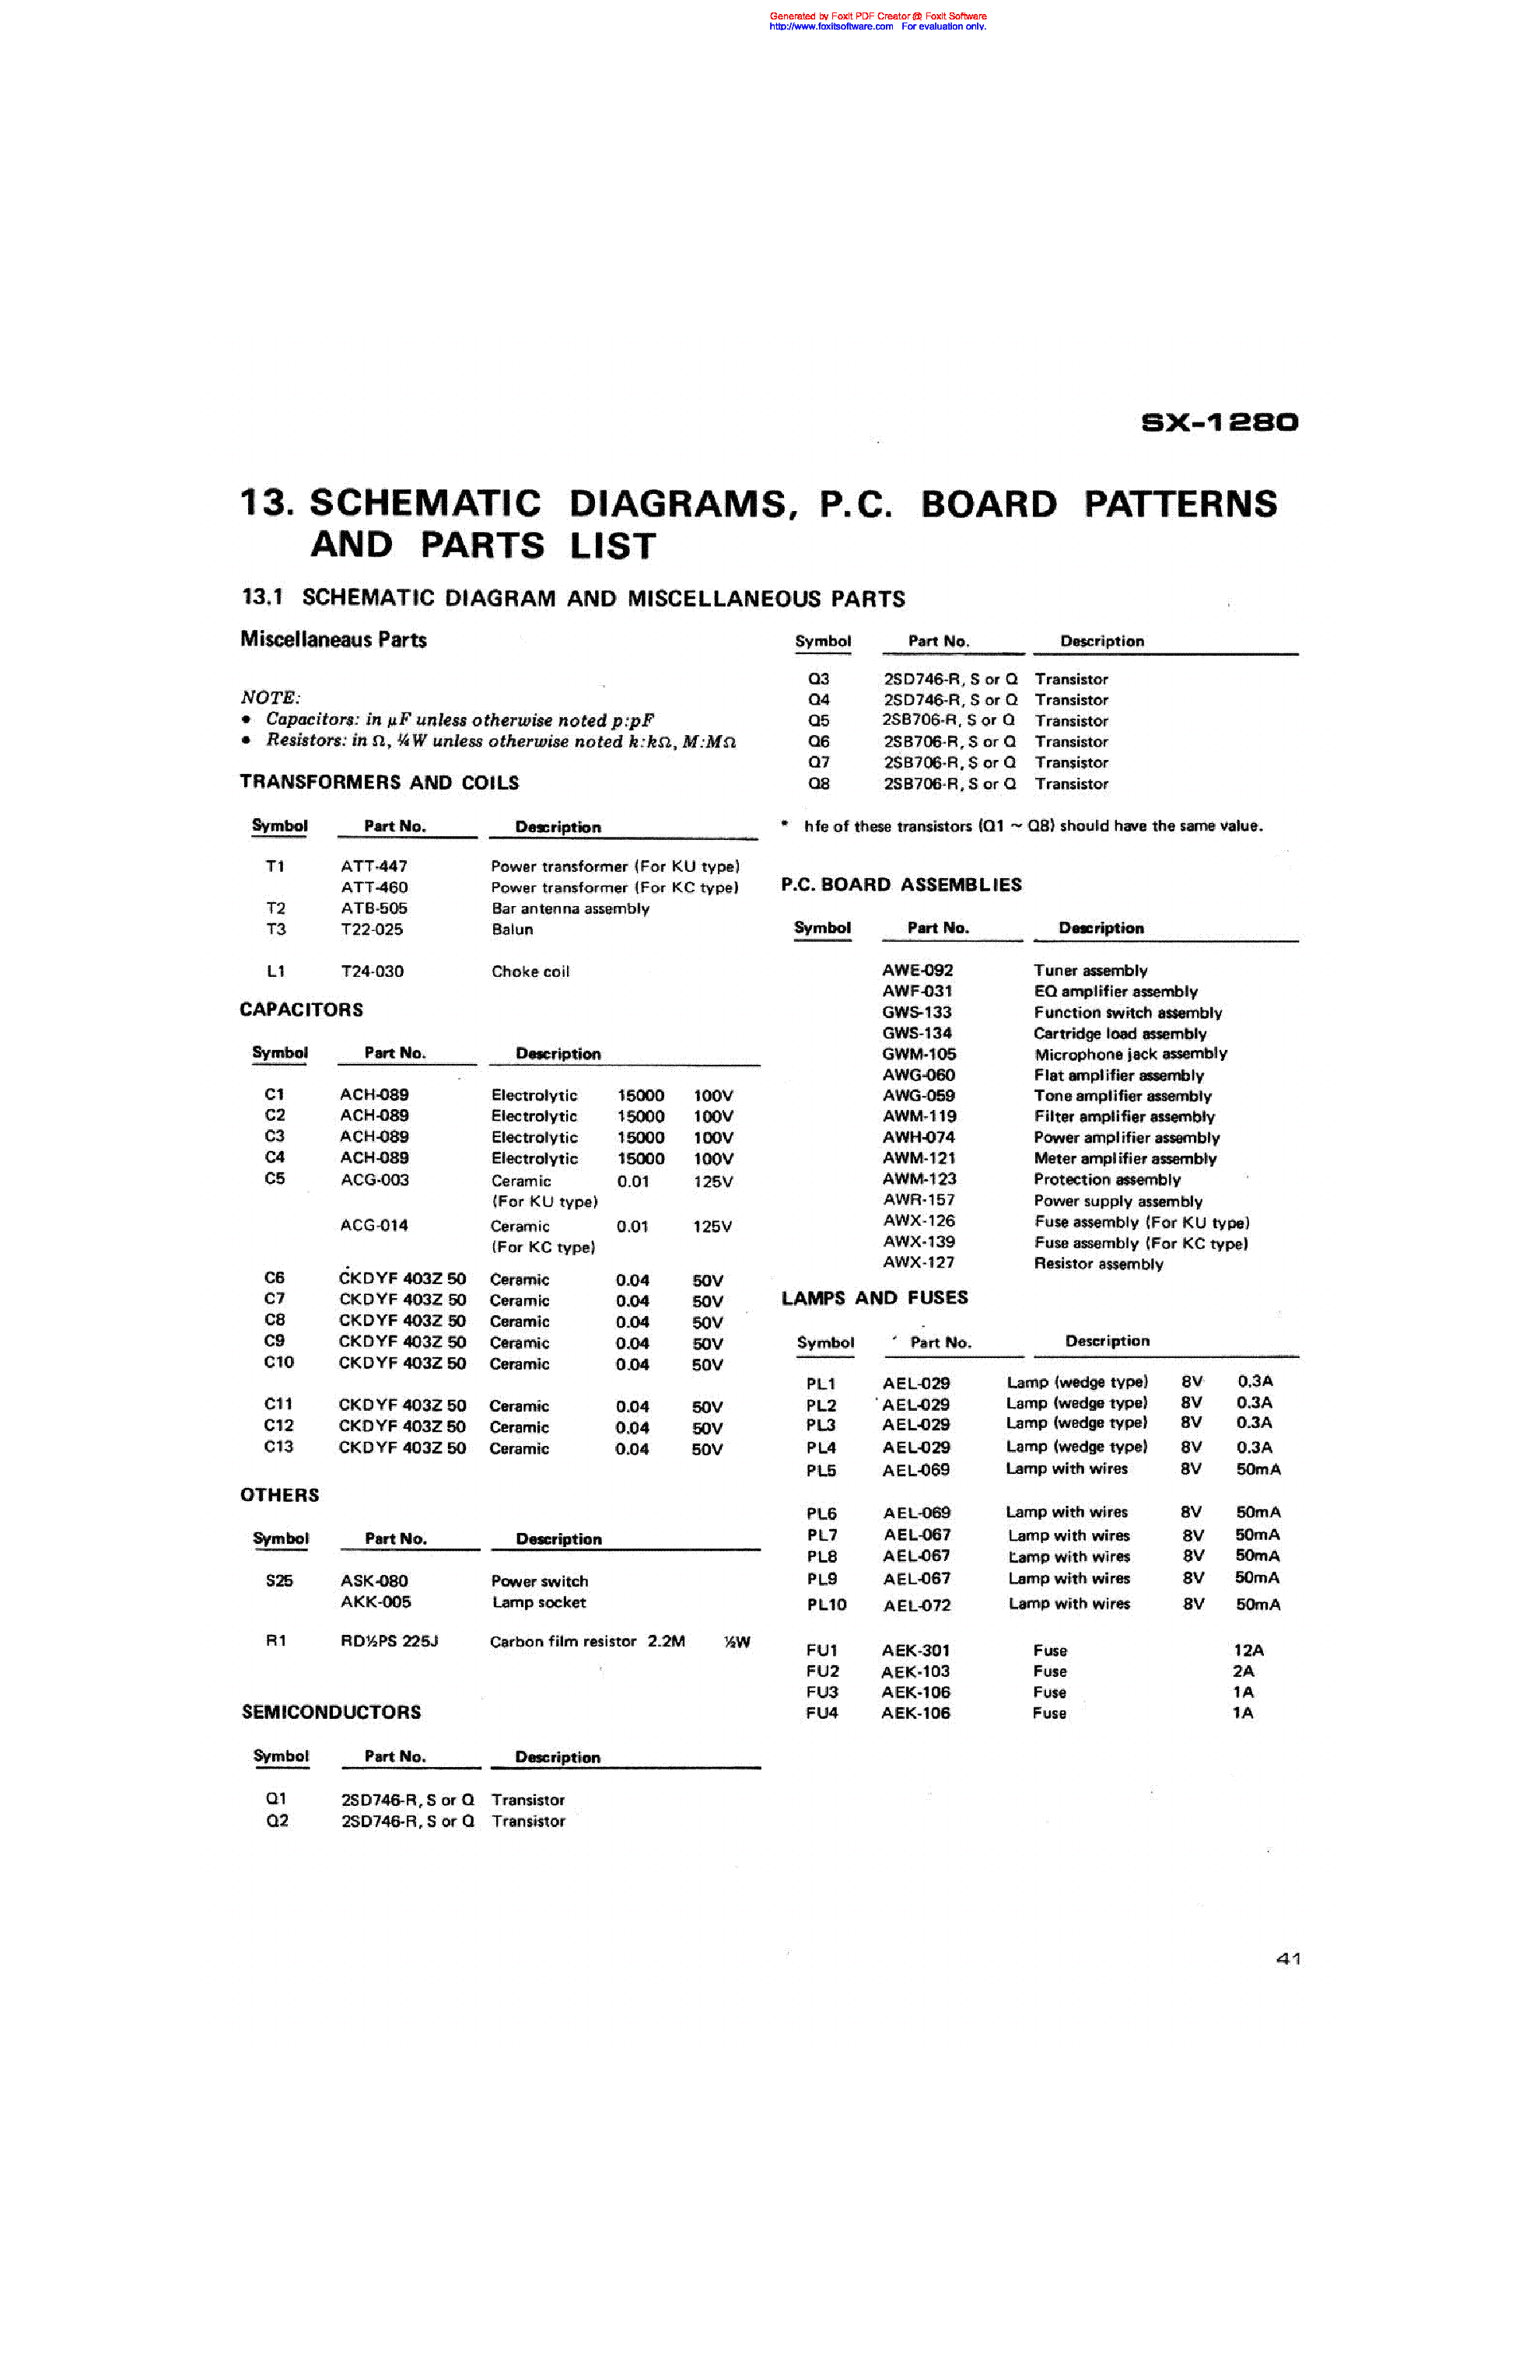 Compaq 1280 Seriesputer Schematic Diagram Manual